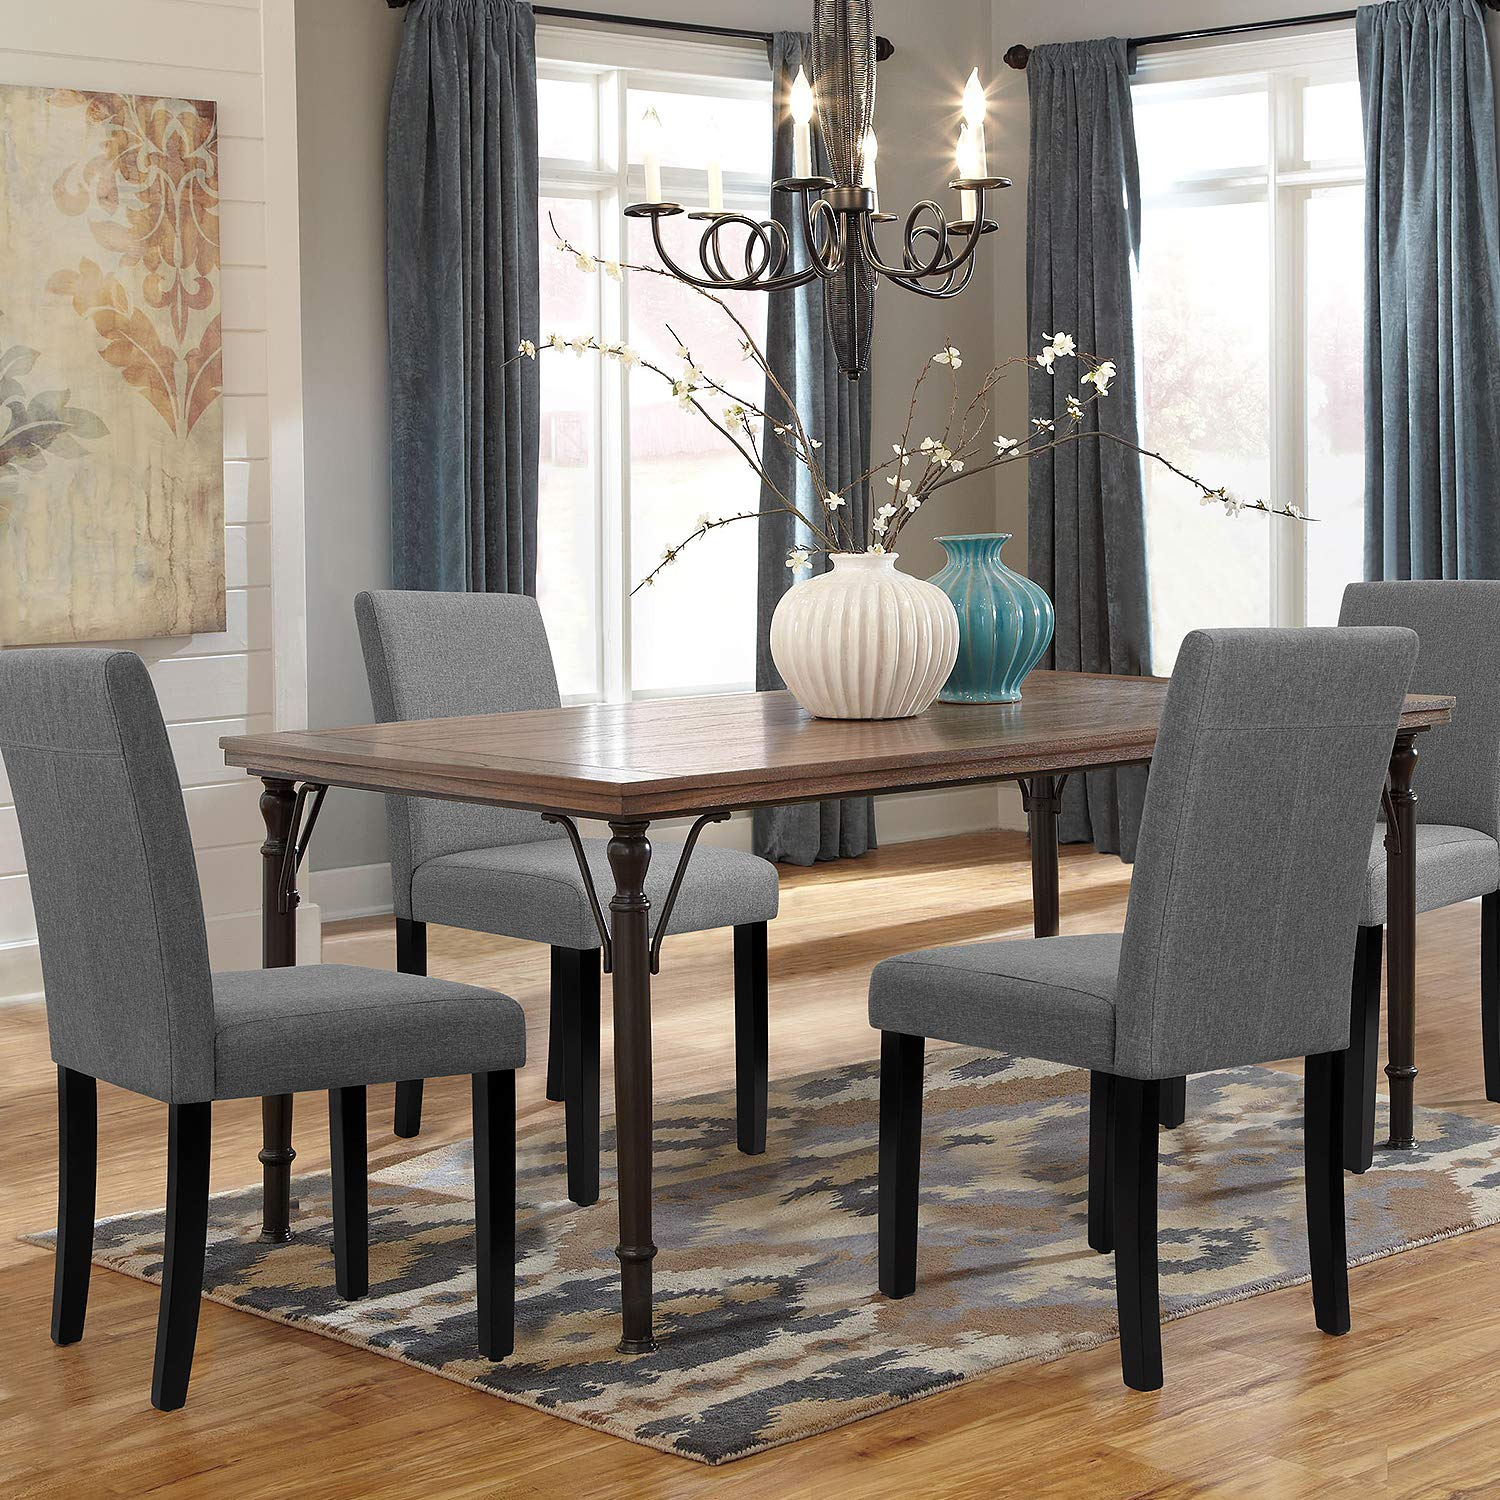 Walnew Set of 4 Modern Upholstered Dining Chairs with Wood Legs